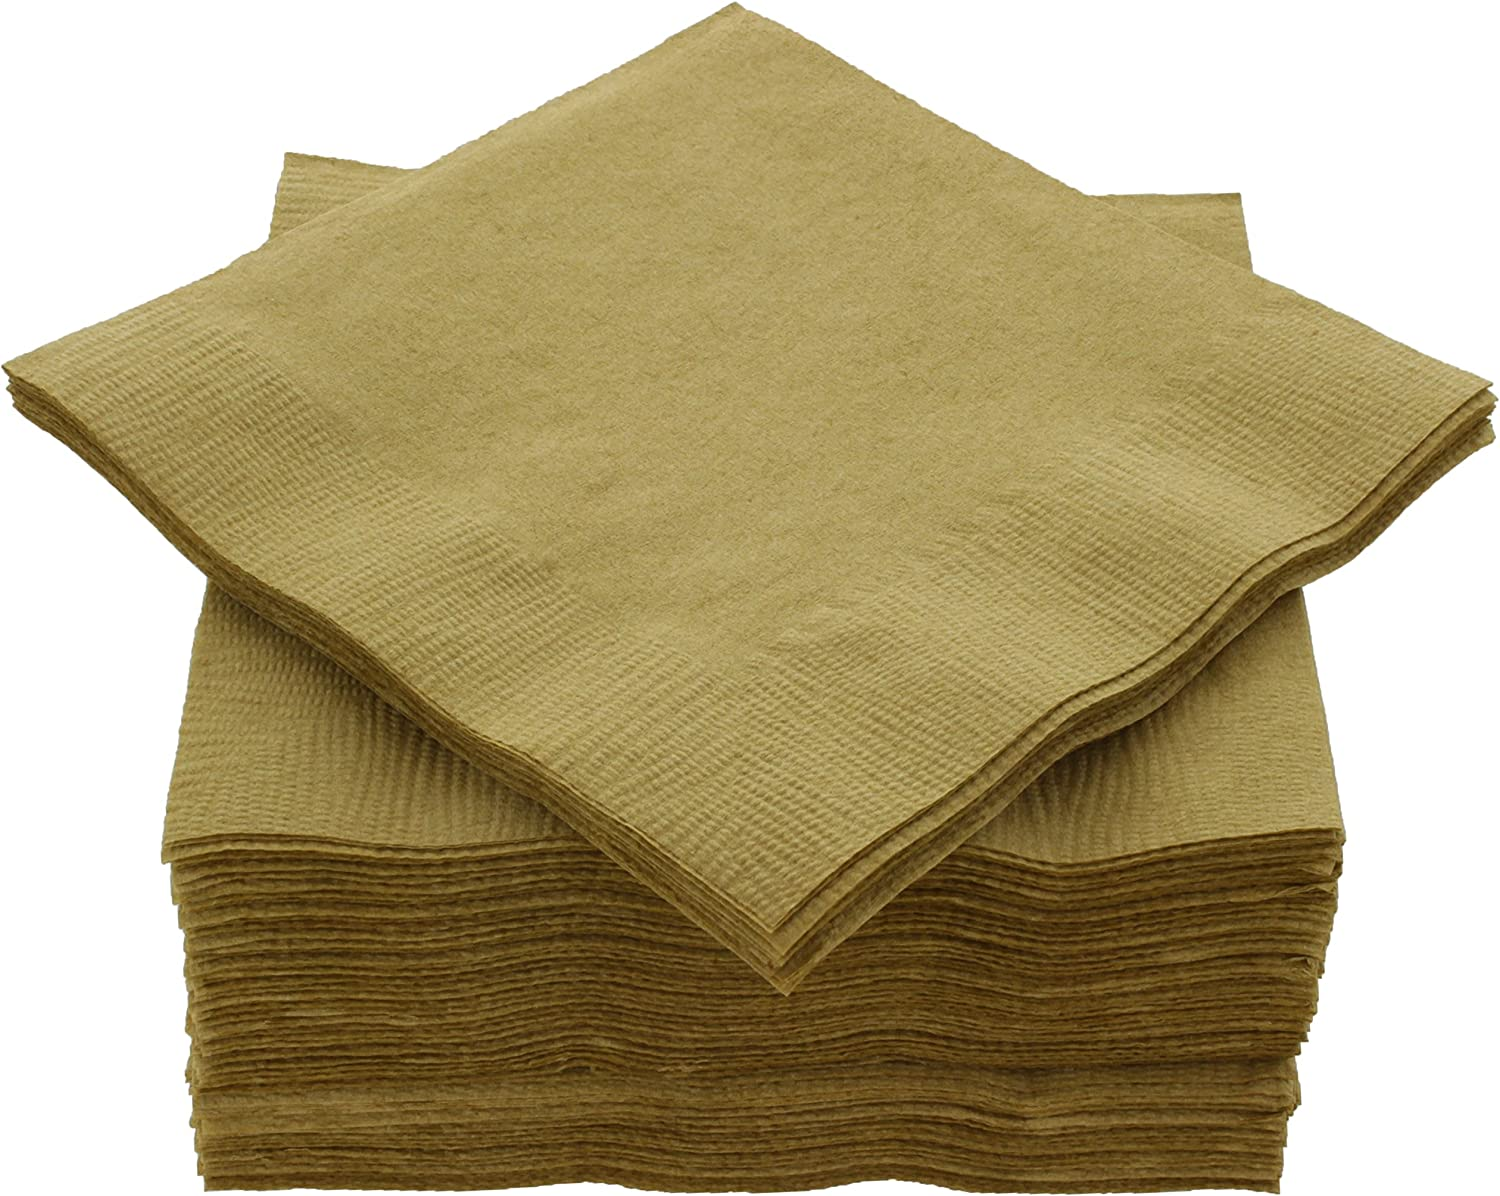 "Amcrate Big Party Pack 125 Count Gold Beverage Napkins - Ideal for Wedding, Party, Birthday, Dinner, Lunch, Cocktails. (5"" x 5"")"